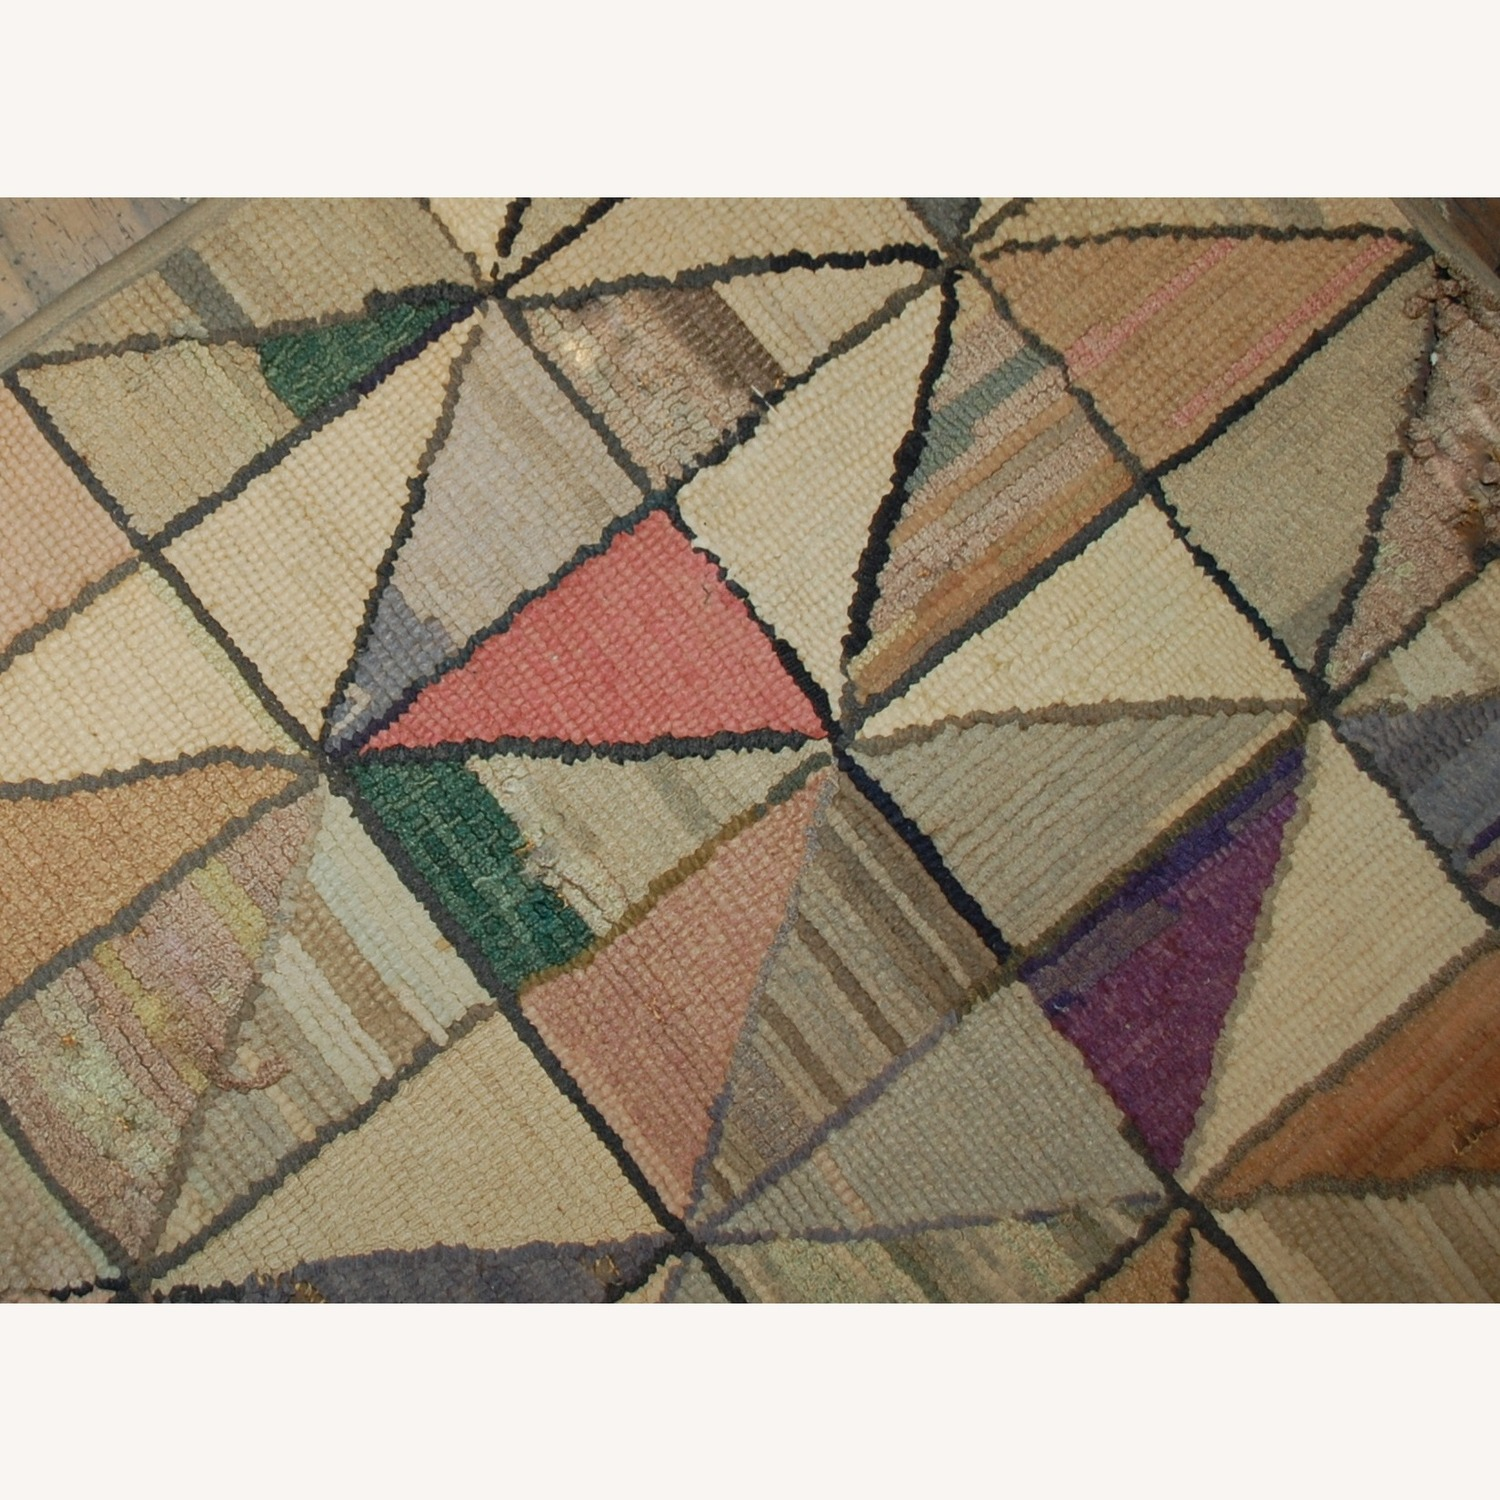 Handmade Antique Square American Hooked Rug - image-2